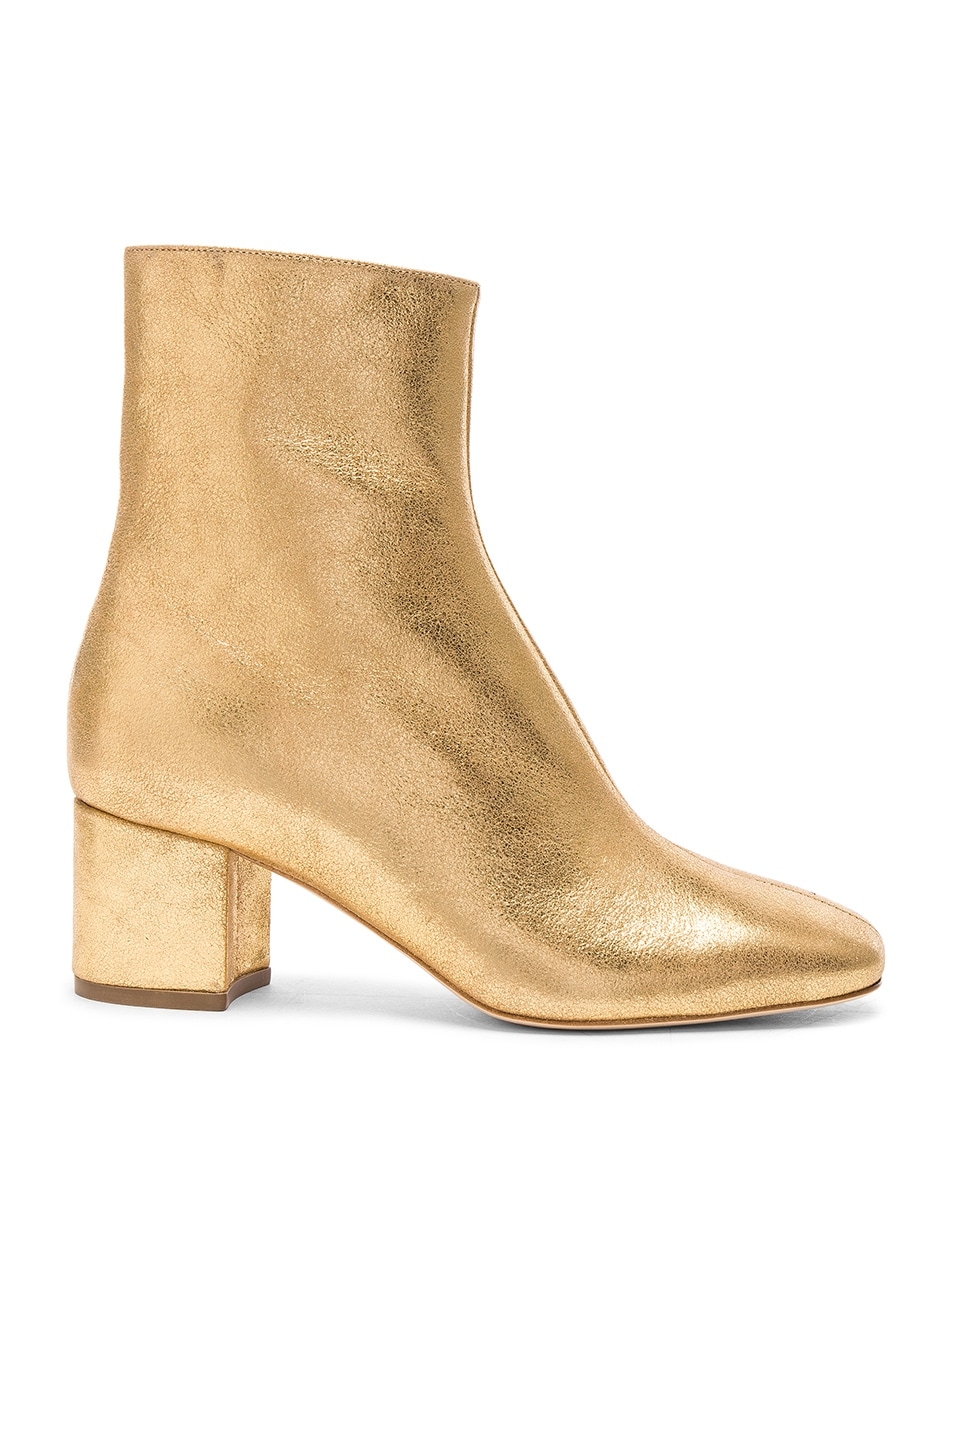 Image 1 of Brother Vellies Leather Kaya Boots in Gold Leather